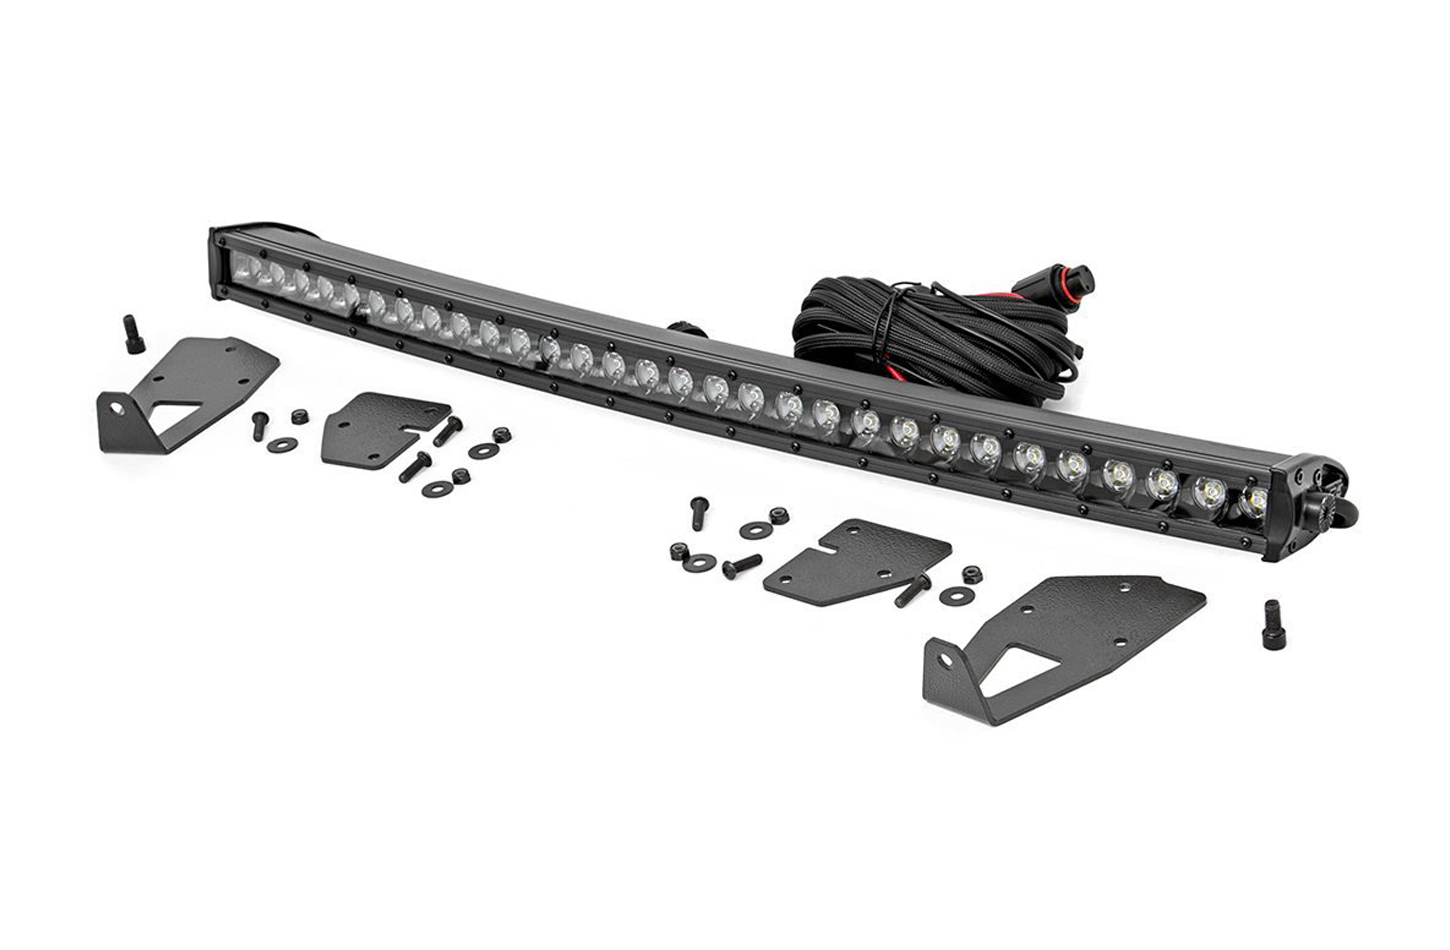 Rough Country Ford 30in LED Hidden Gri lle Kit (17-20 F-150 Rap